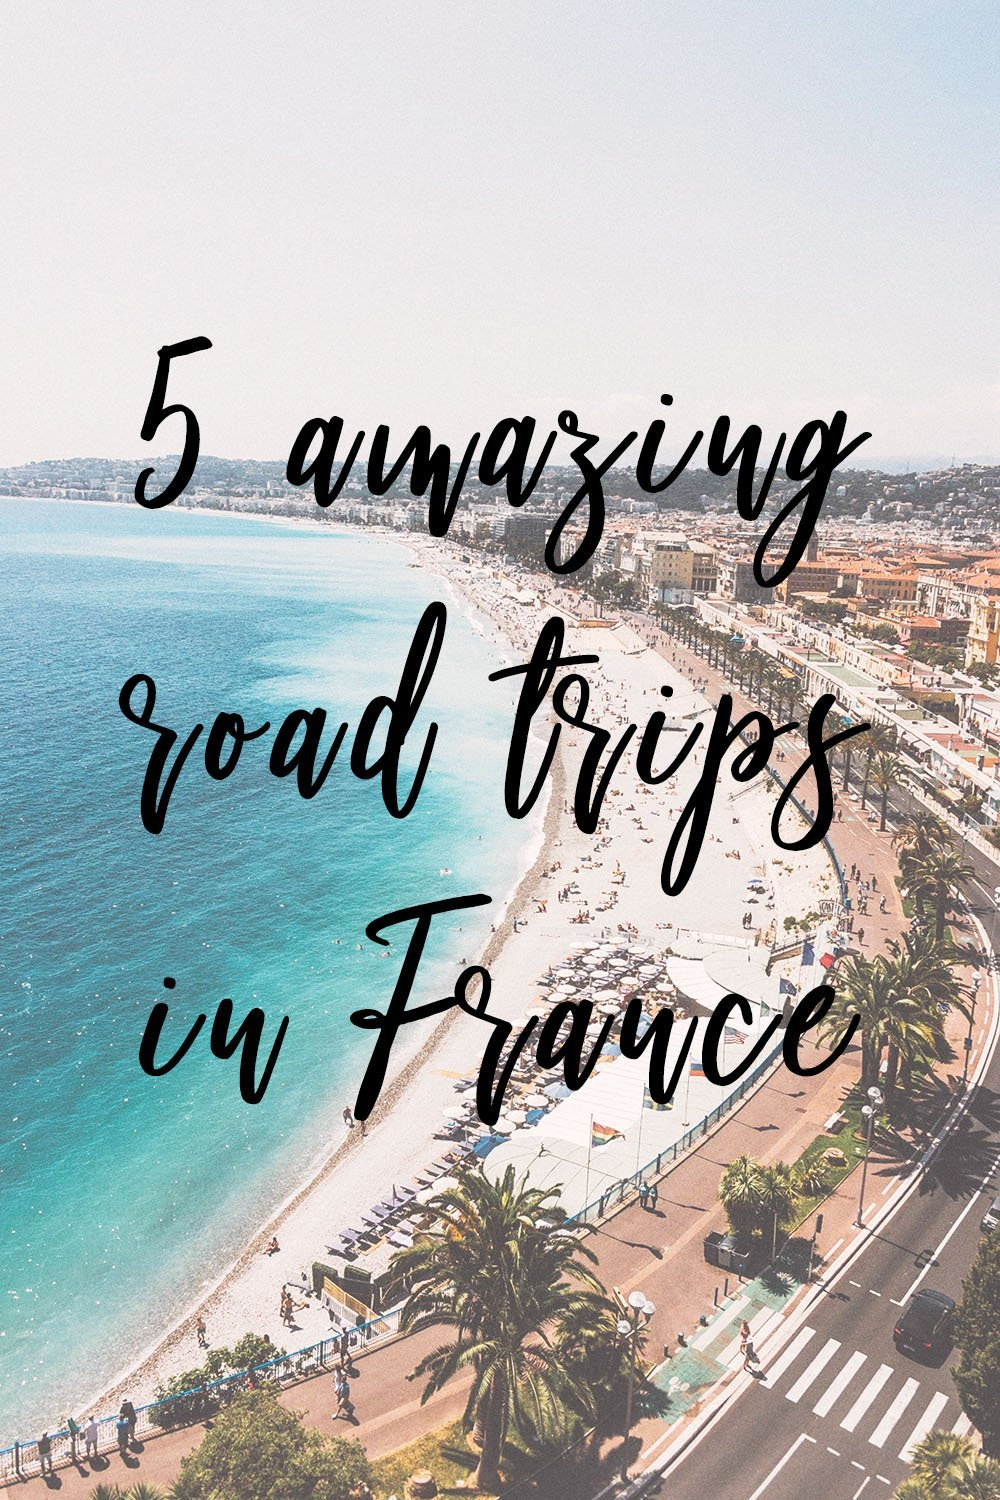 Get to know France beyond the glitz and glamor of its cities! Go for a road trip and get acquainted with its fragrant fields, cliffside castles, and fascinating towns. Here are 5 amazing road trips to take in France.